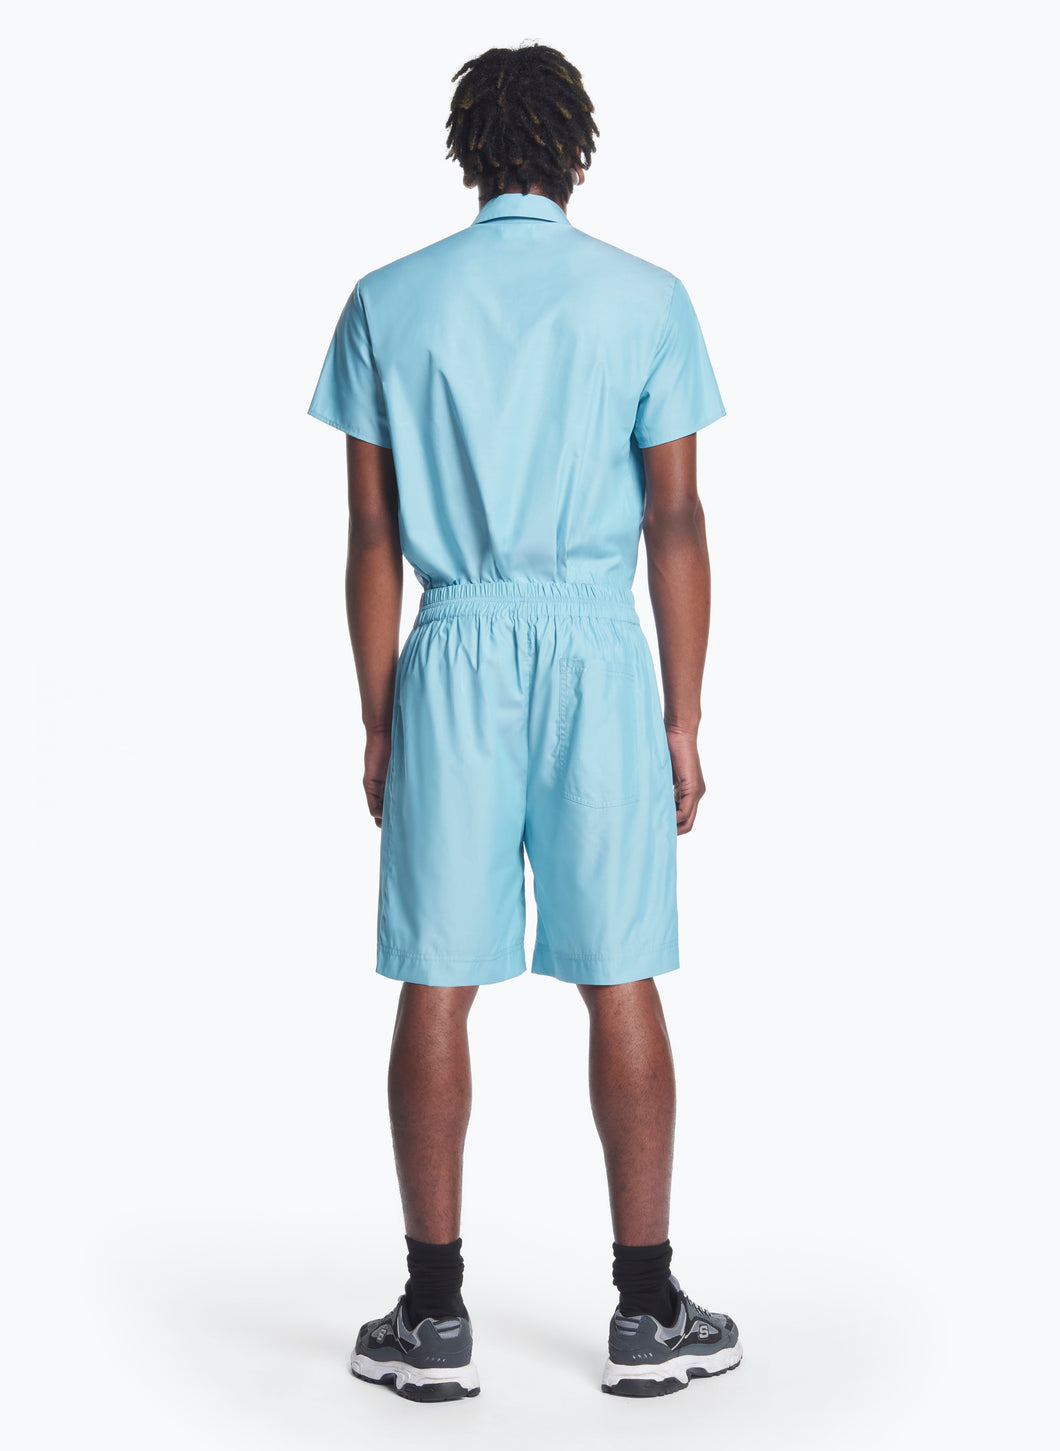 Bermuda Shorts with Stitched Waist in Turquoise Poplin